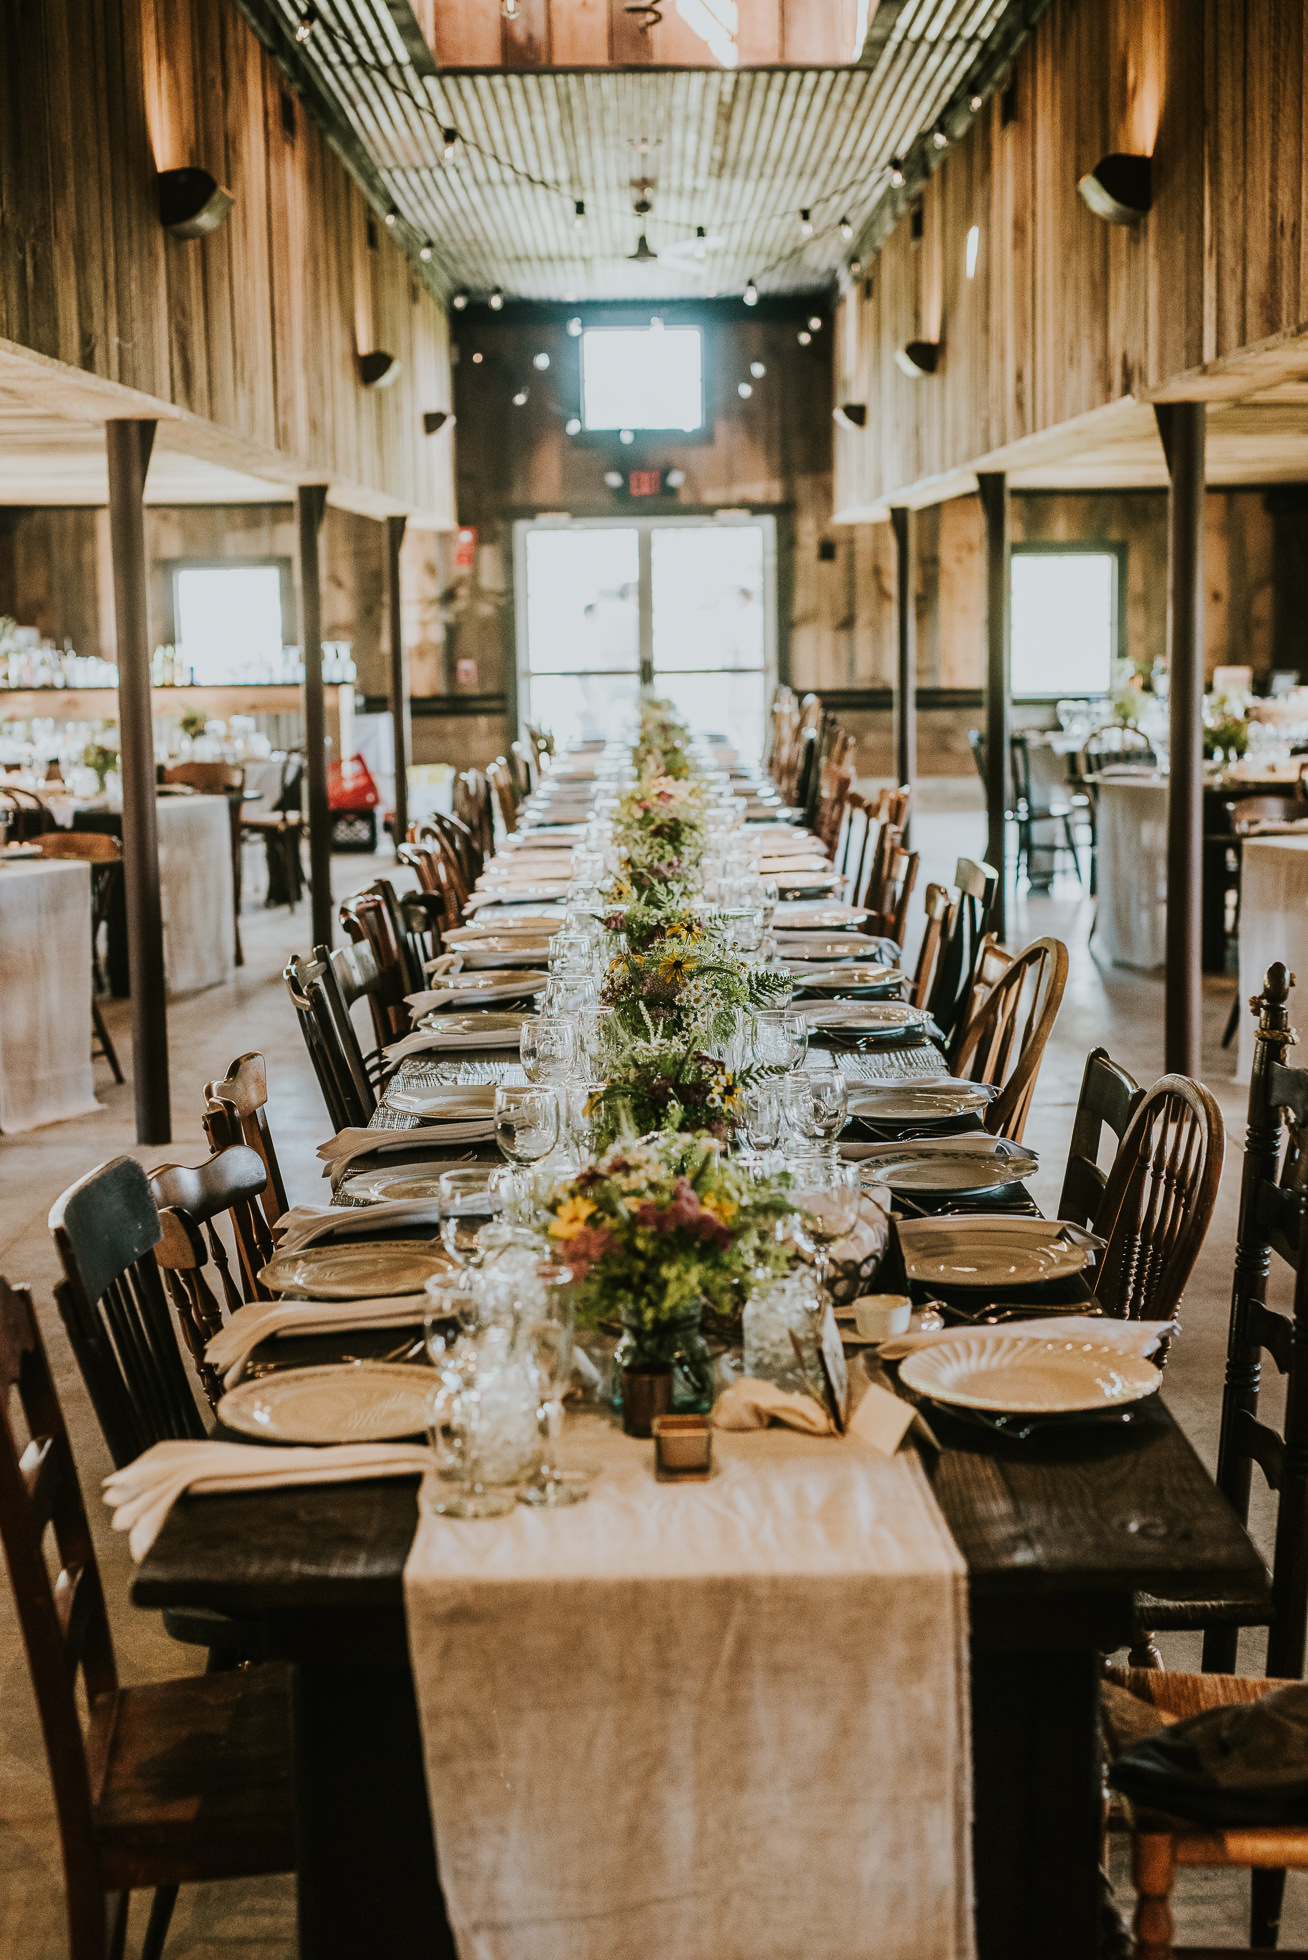 South Farms Connecticut rustic wedding photographed by Traverse the Tides